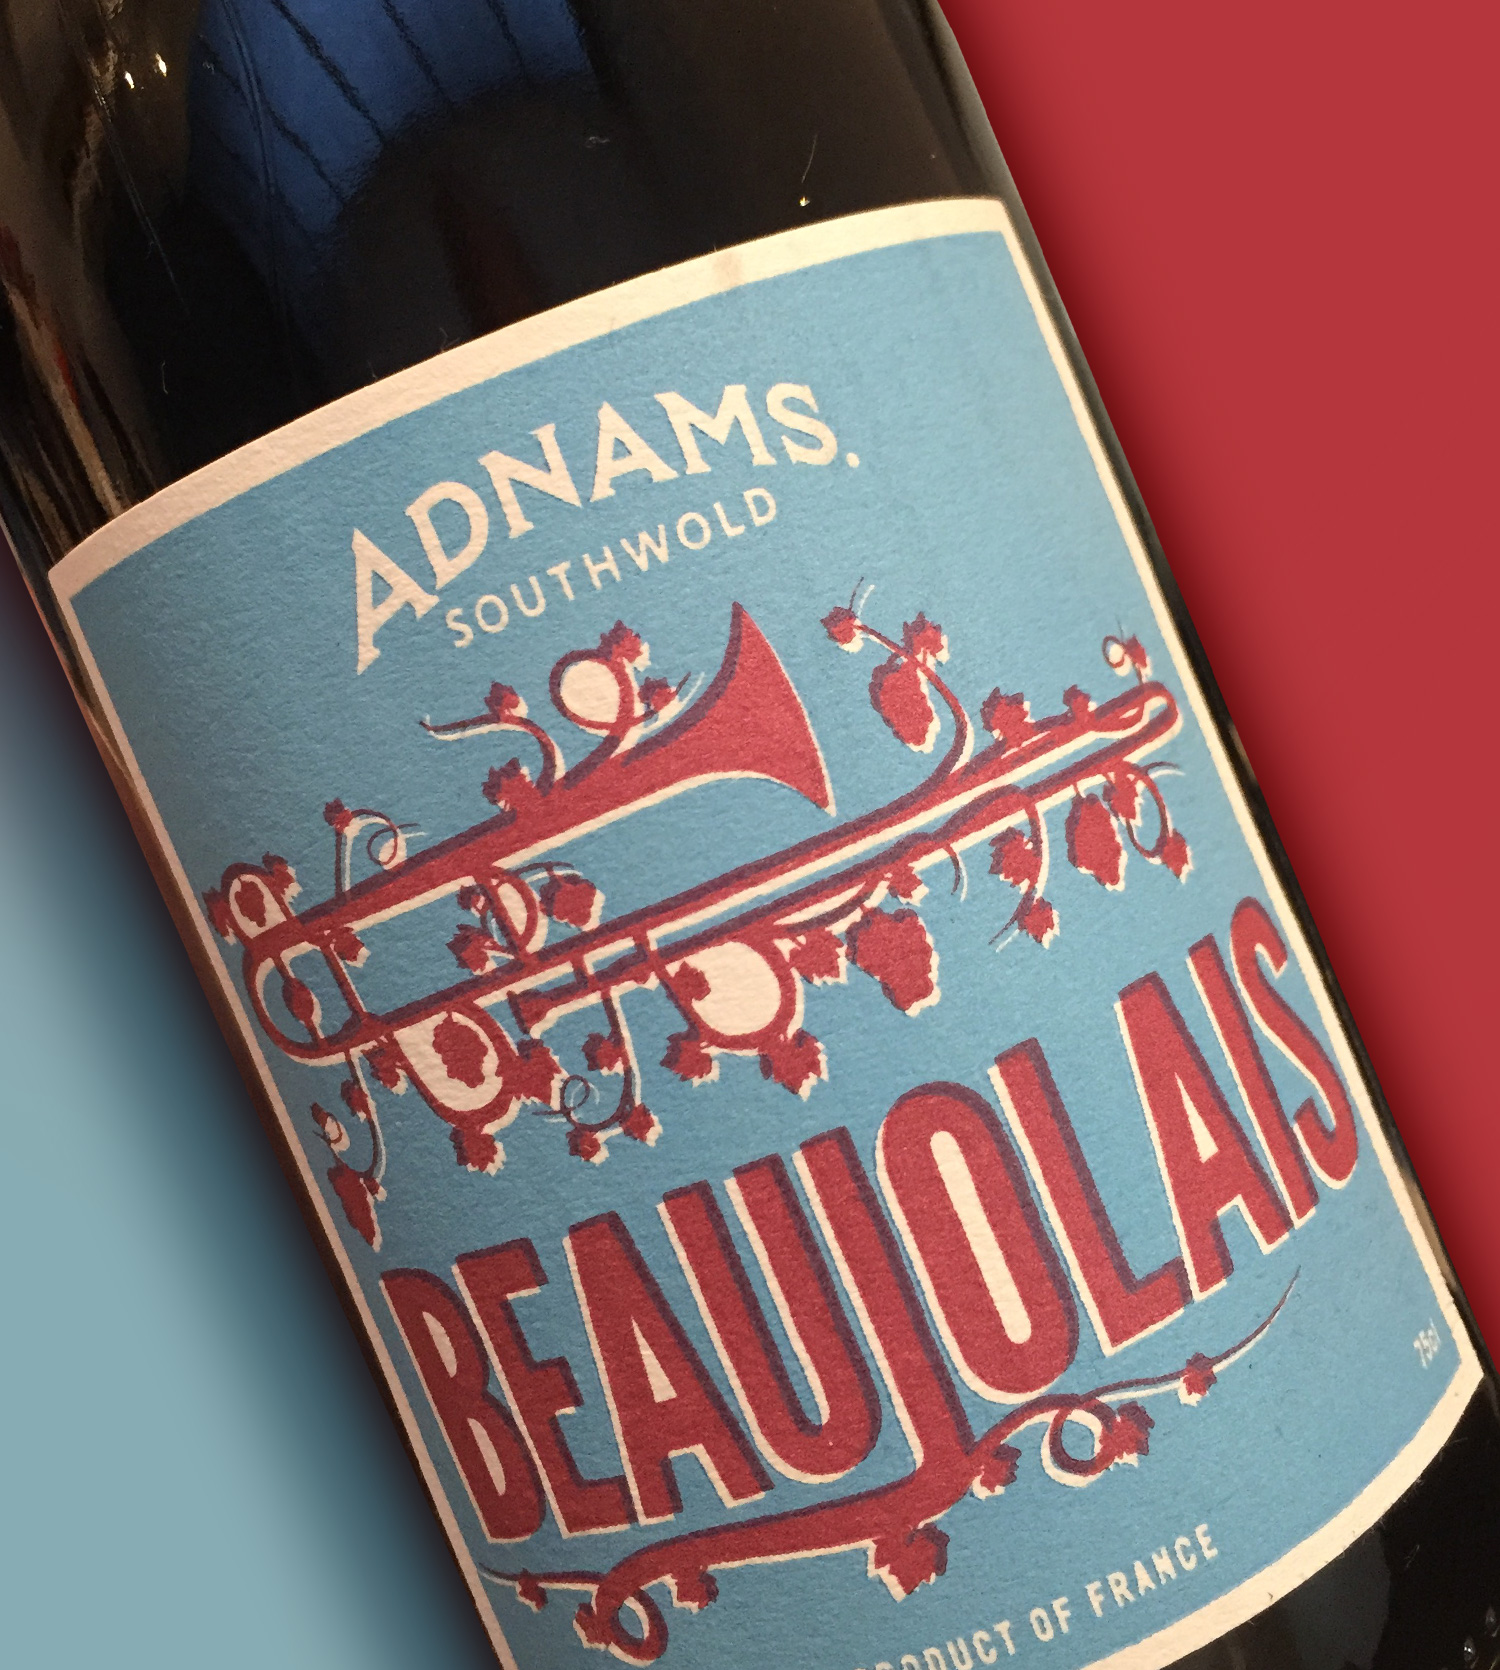 Adnams wine label beaujolais